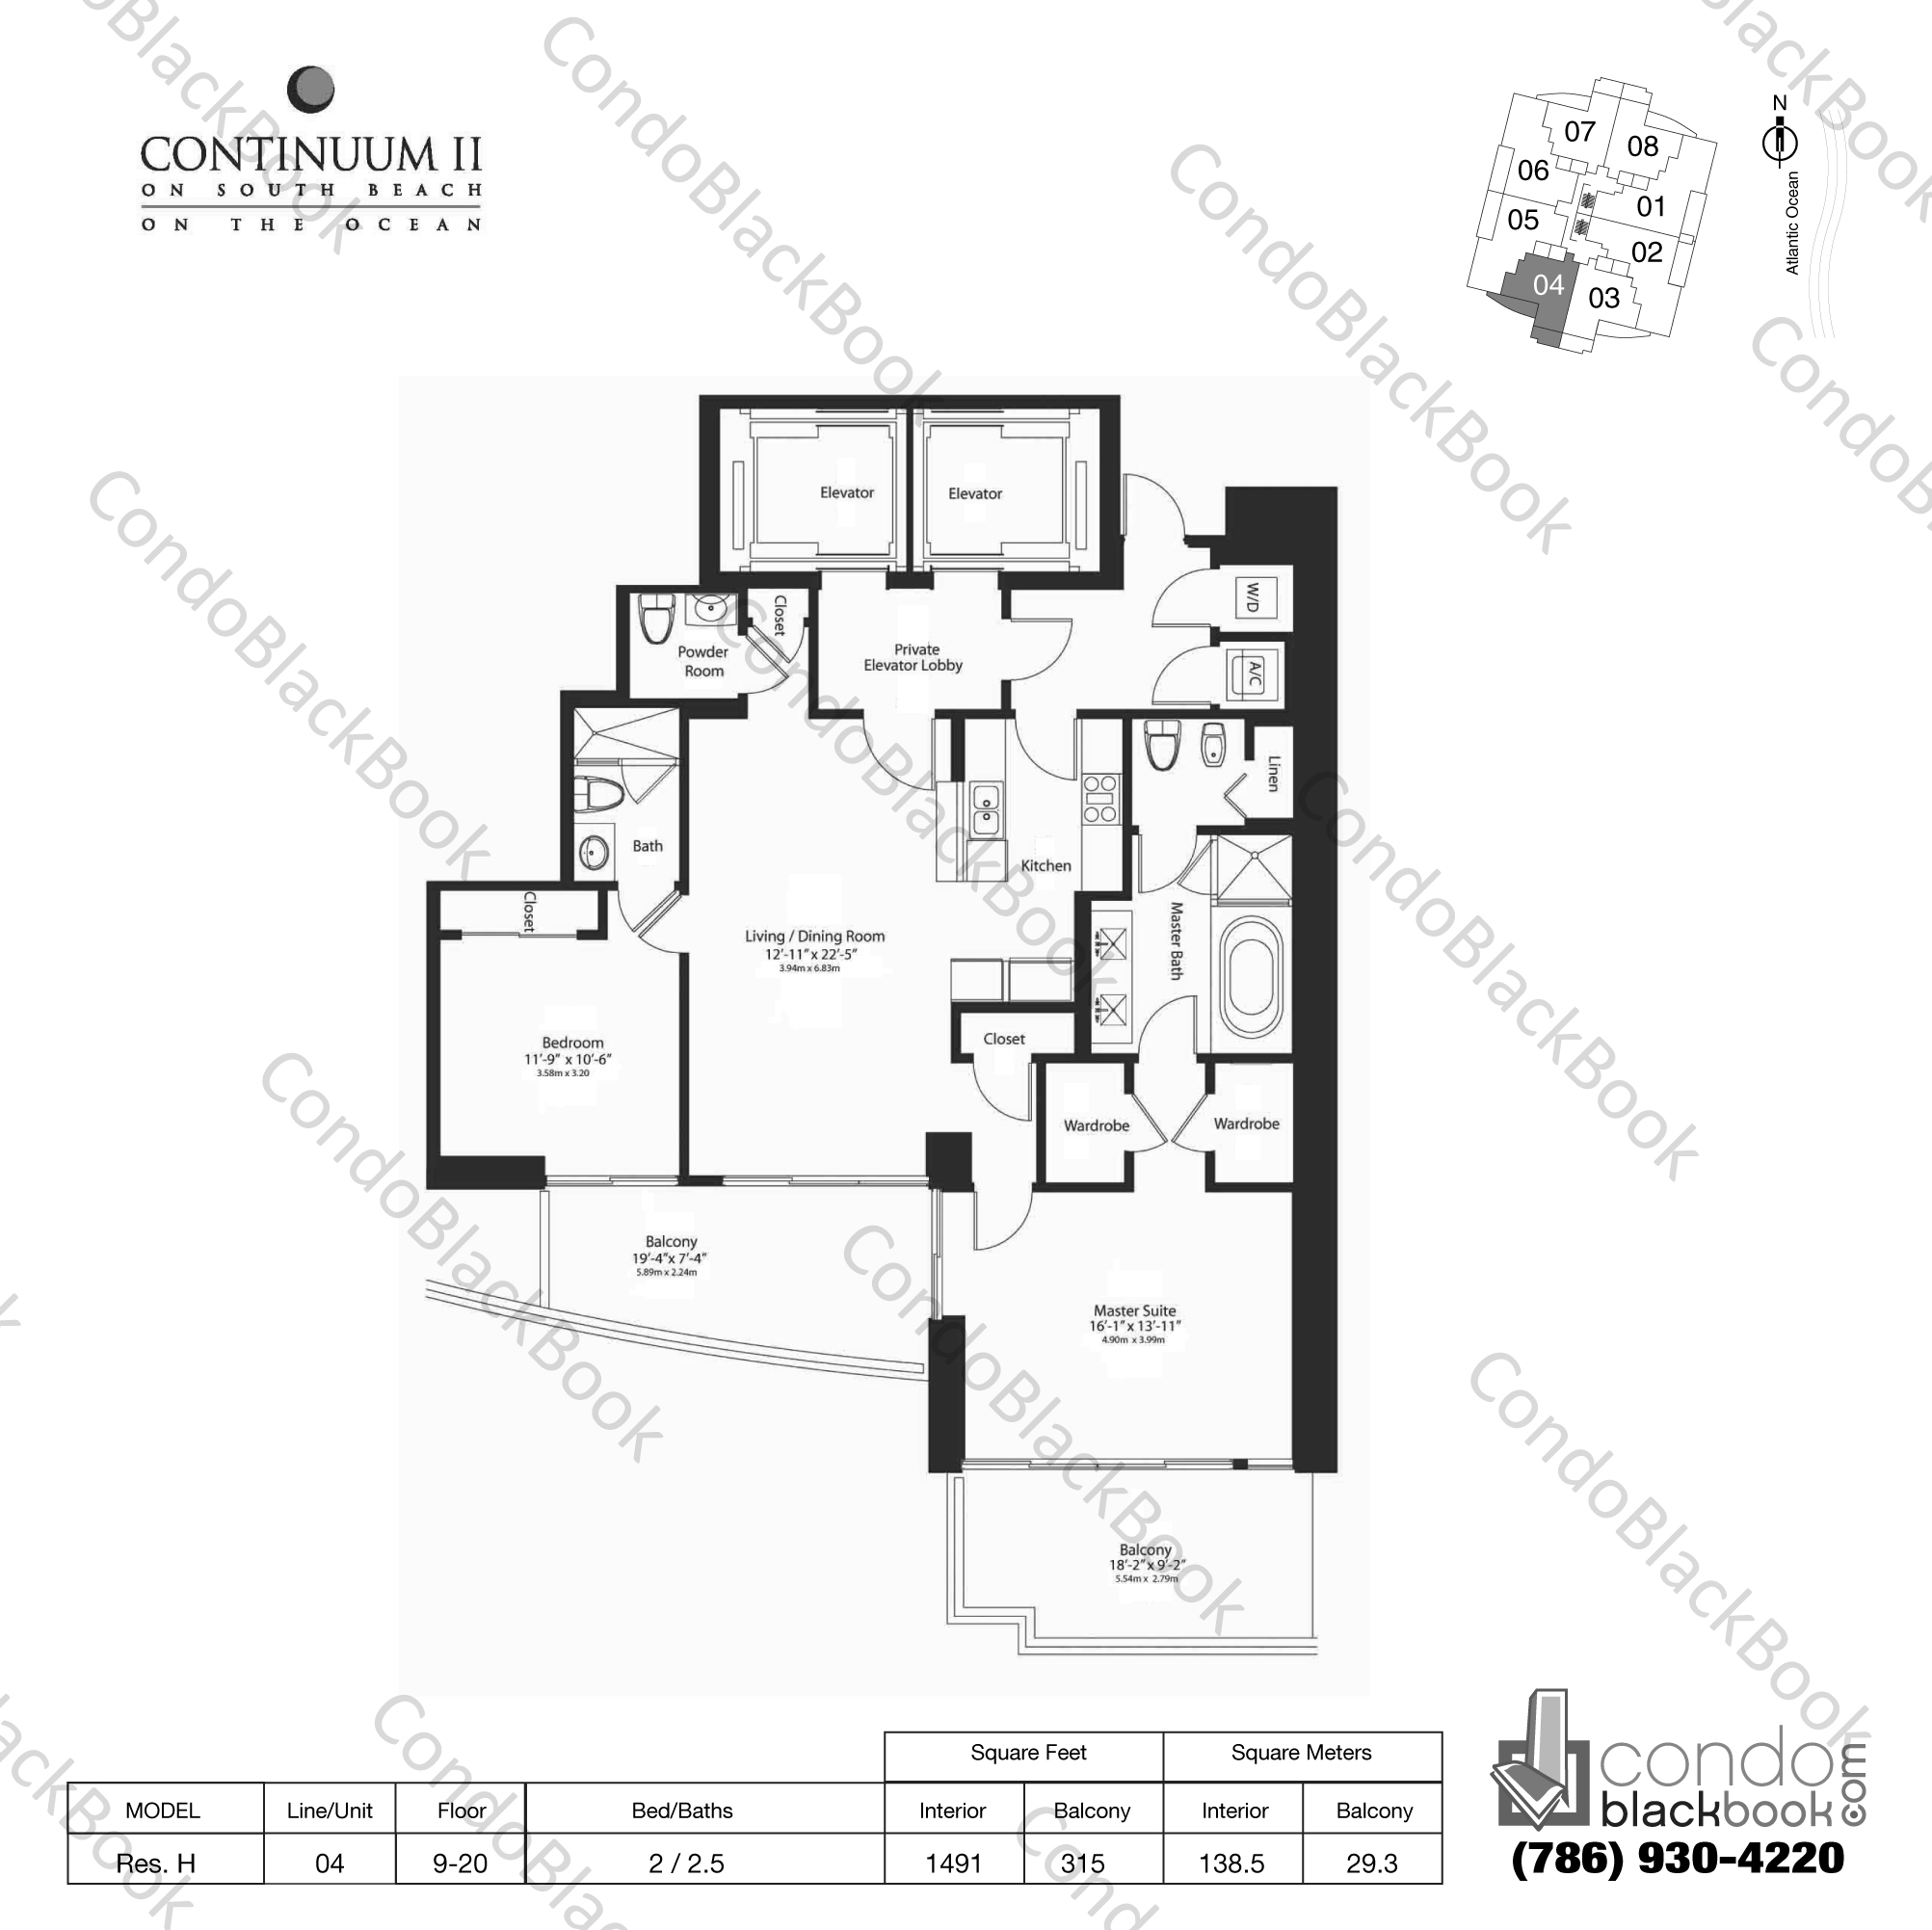 Floor plan for Continuum II North South Beach Miami Beach, model Res. H, line 04, 2 / 2.5 bedrooms, 1491 sq ft